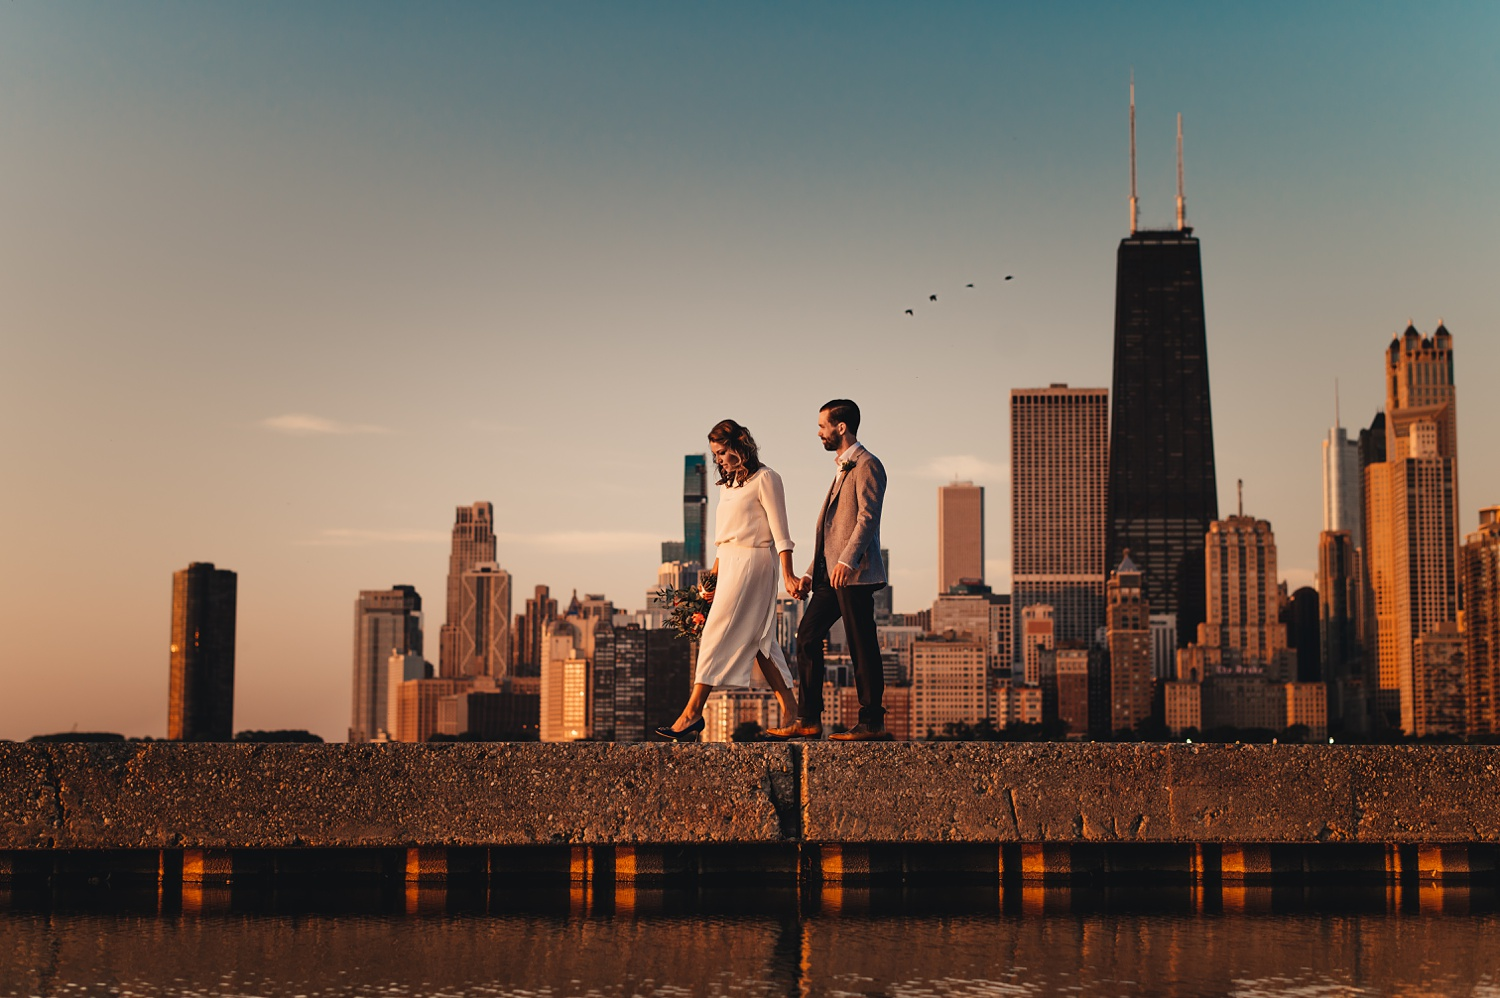 Sunrise Chicago Wedding - The Adamkovi, bride and groom creative portraits, skyline,